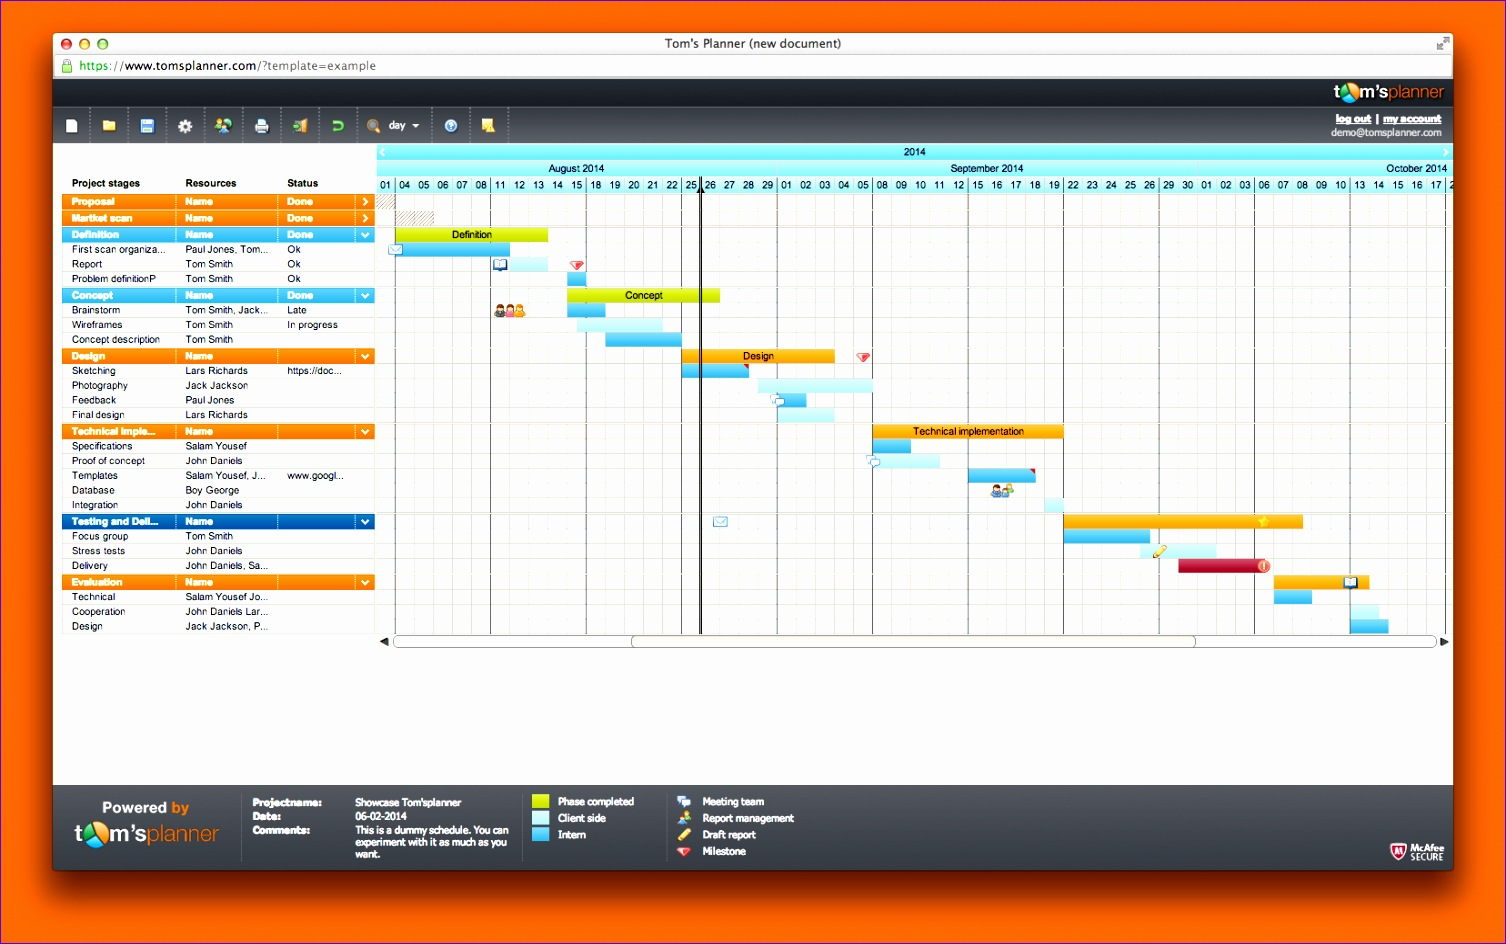 10 project schedule template excel free exceltemplates 6 gantt chart online free 1506944 6 gantt chart online freeproject schedule template excel free alramifo Choice Image